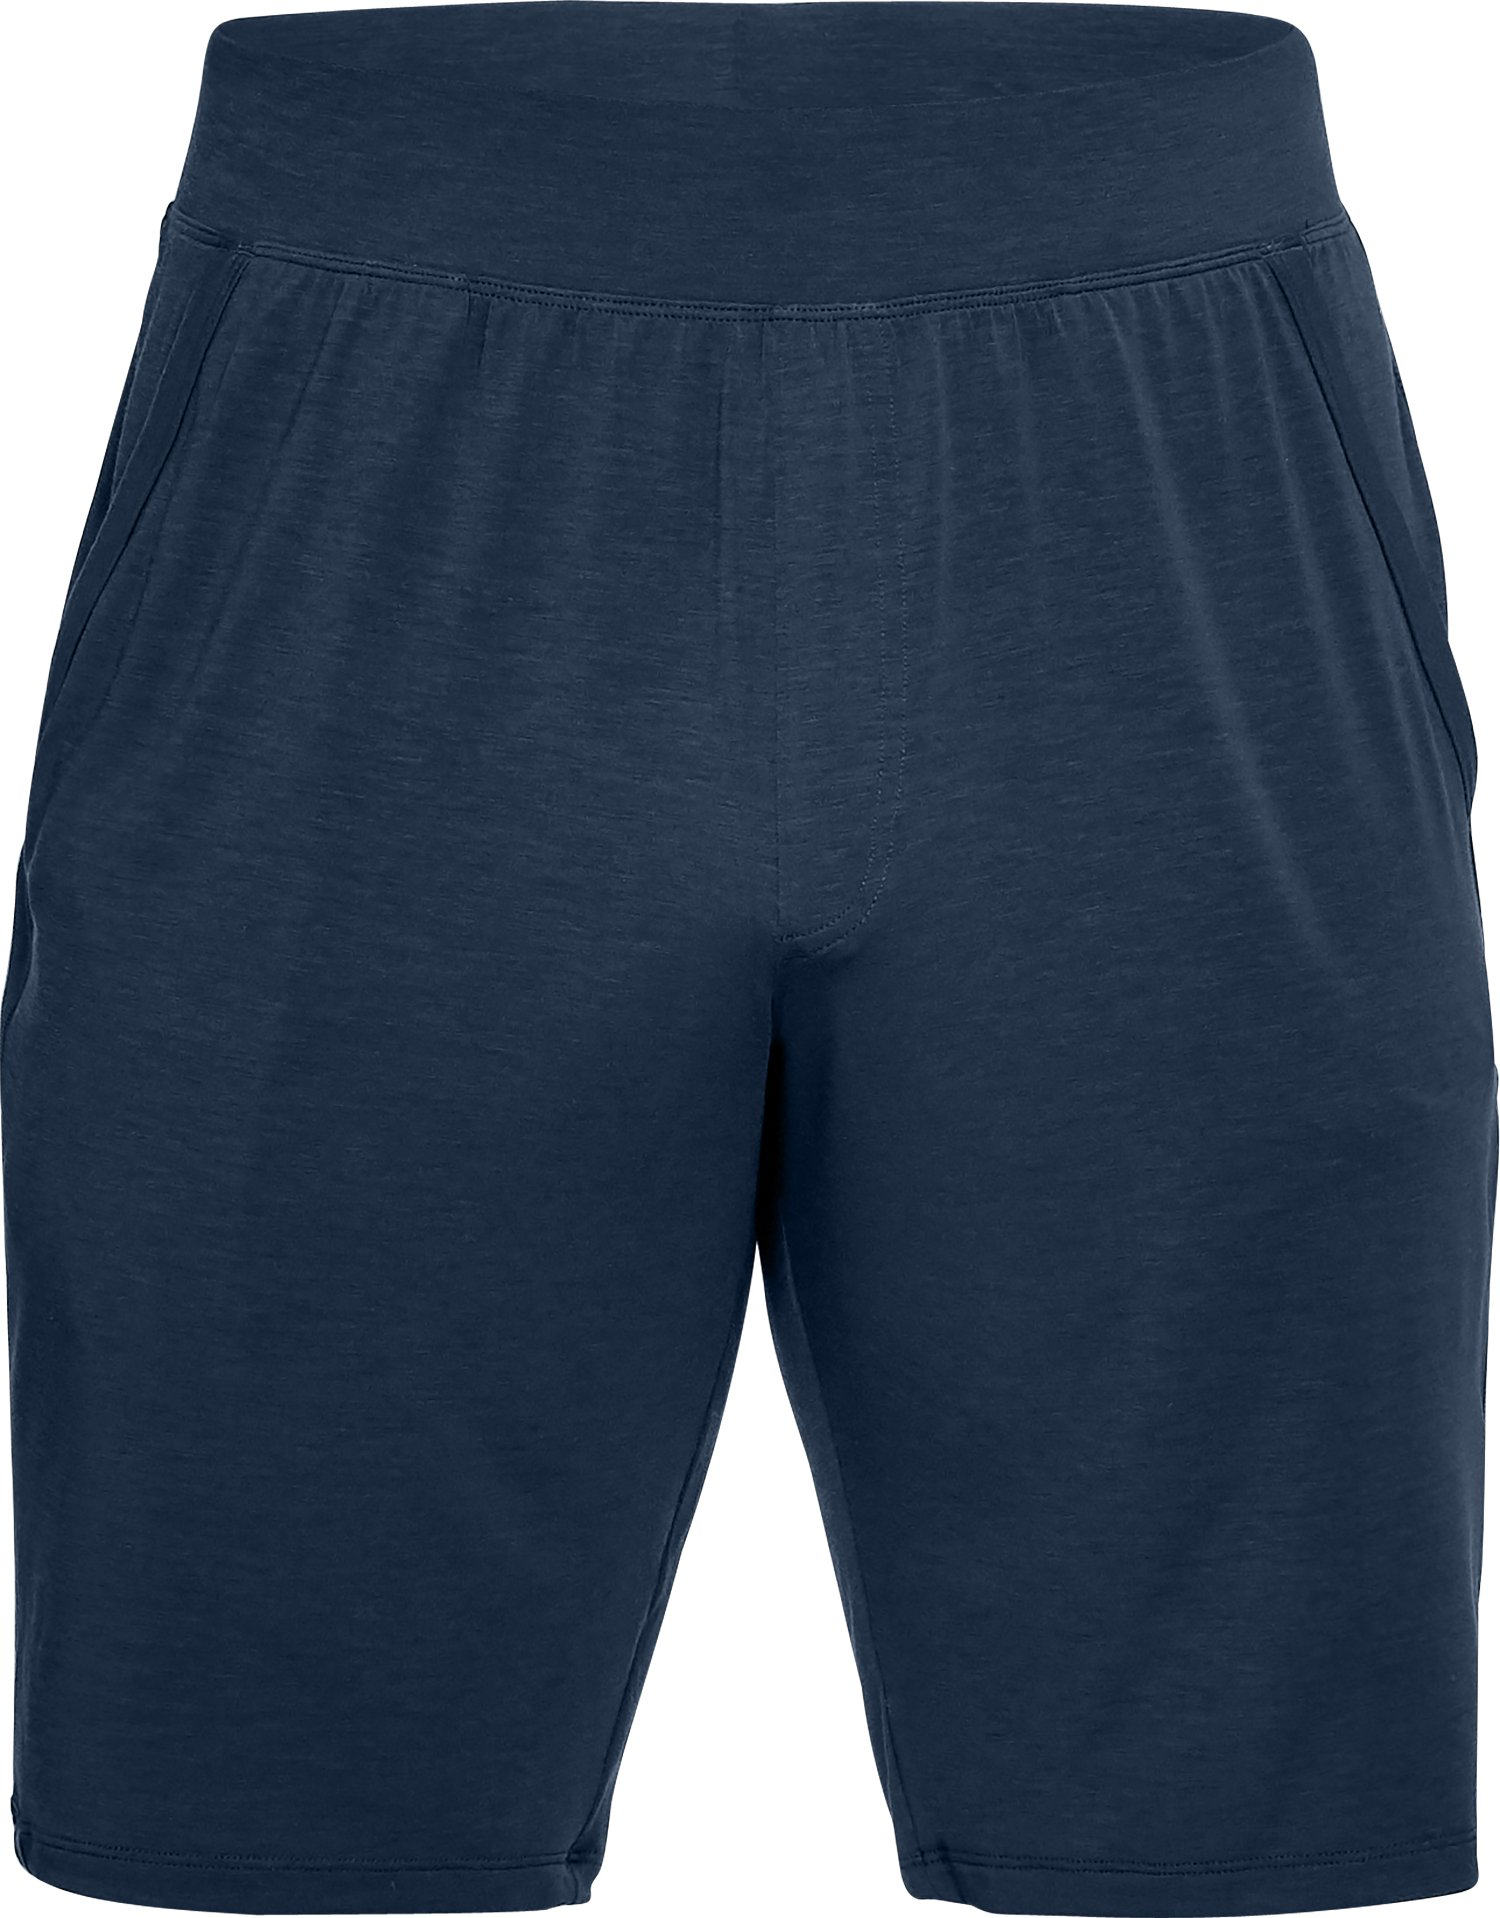 Men's Athlete Recovery Sleepwear Shorts, Academy,